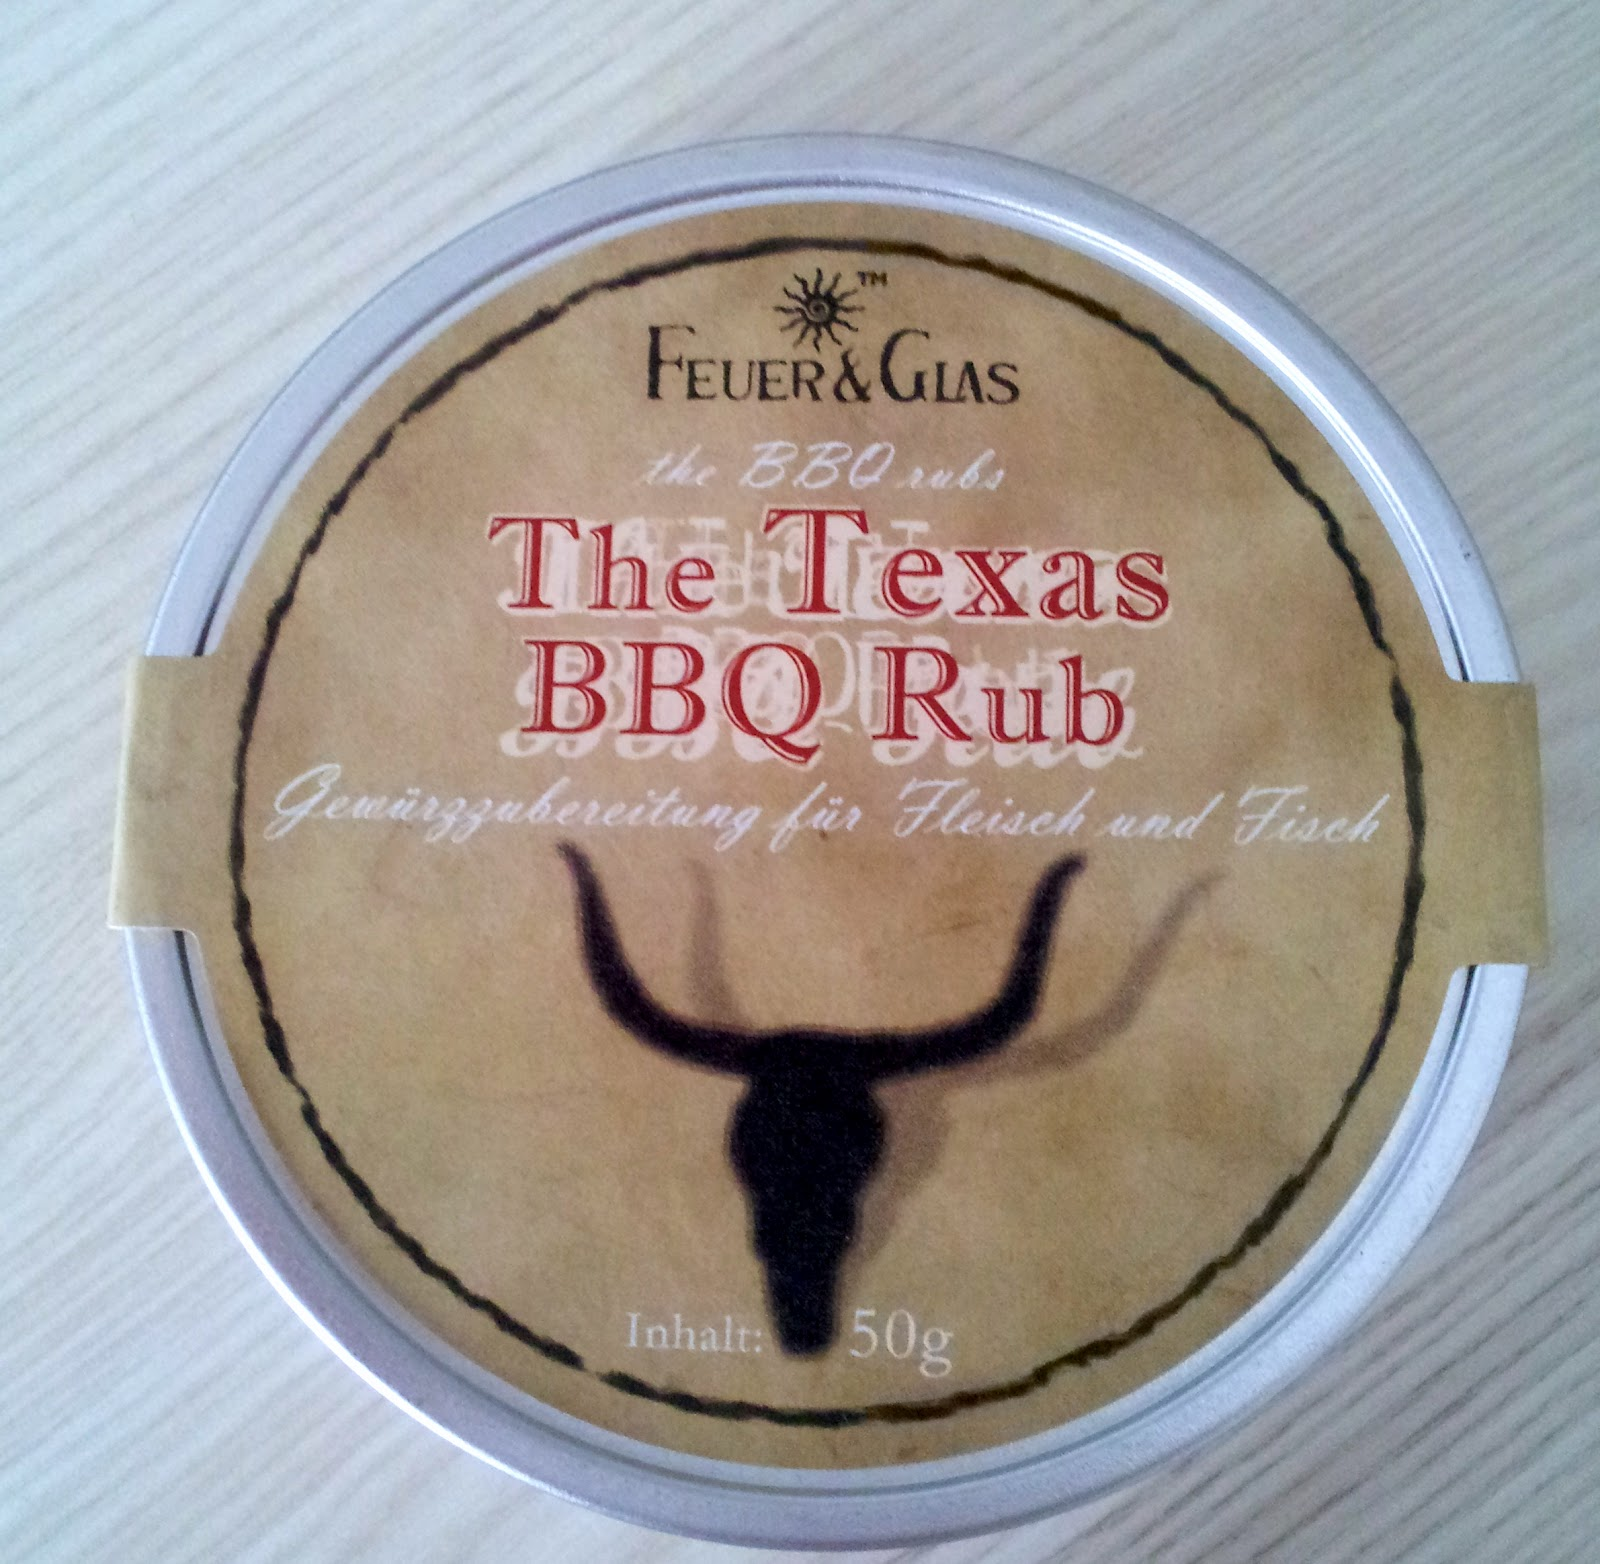 Küchen Mörser Test 2 The Texas Bbq Rub